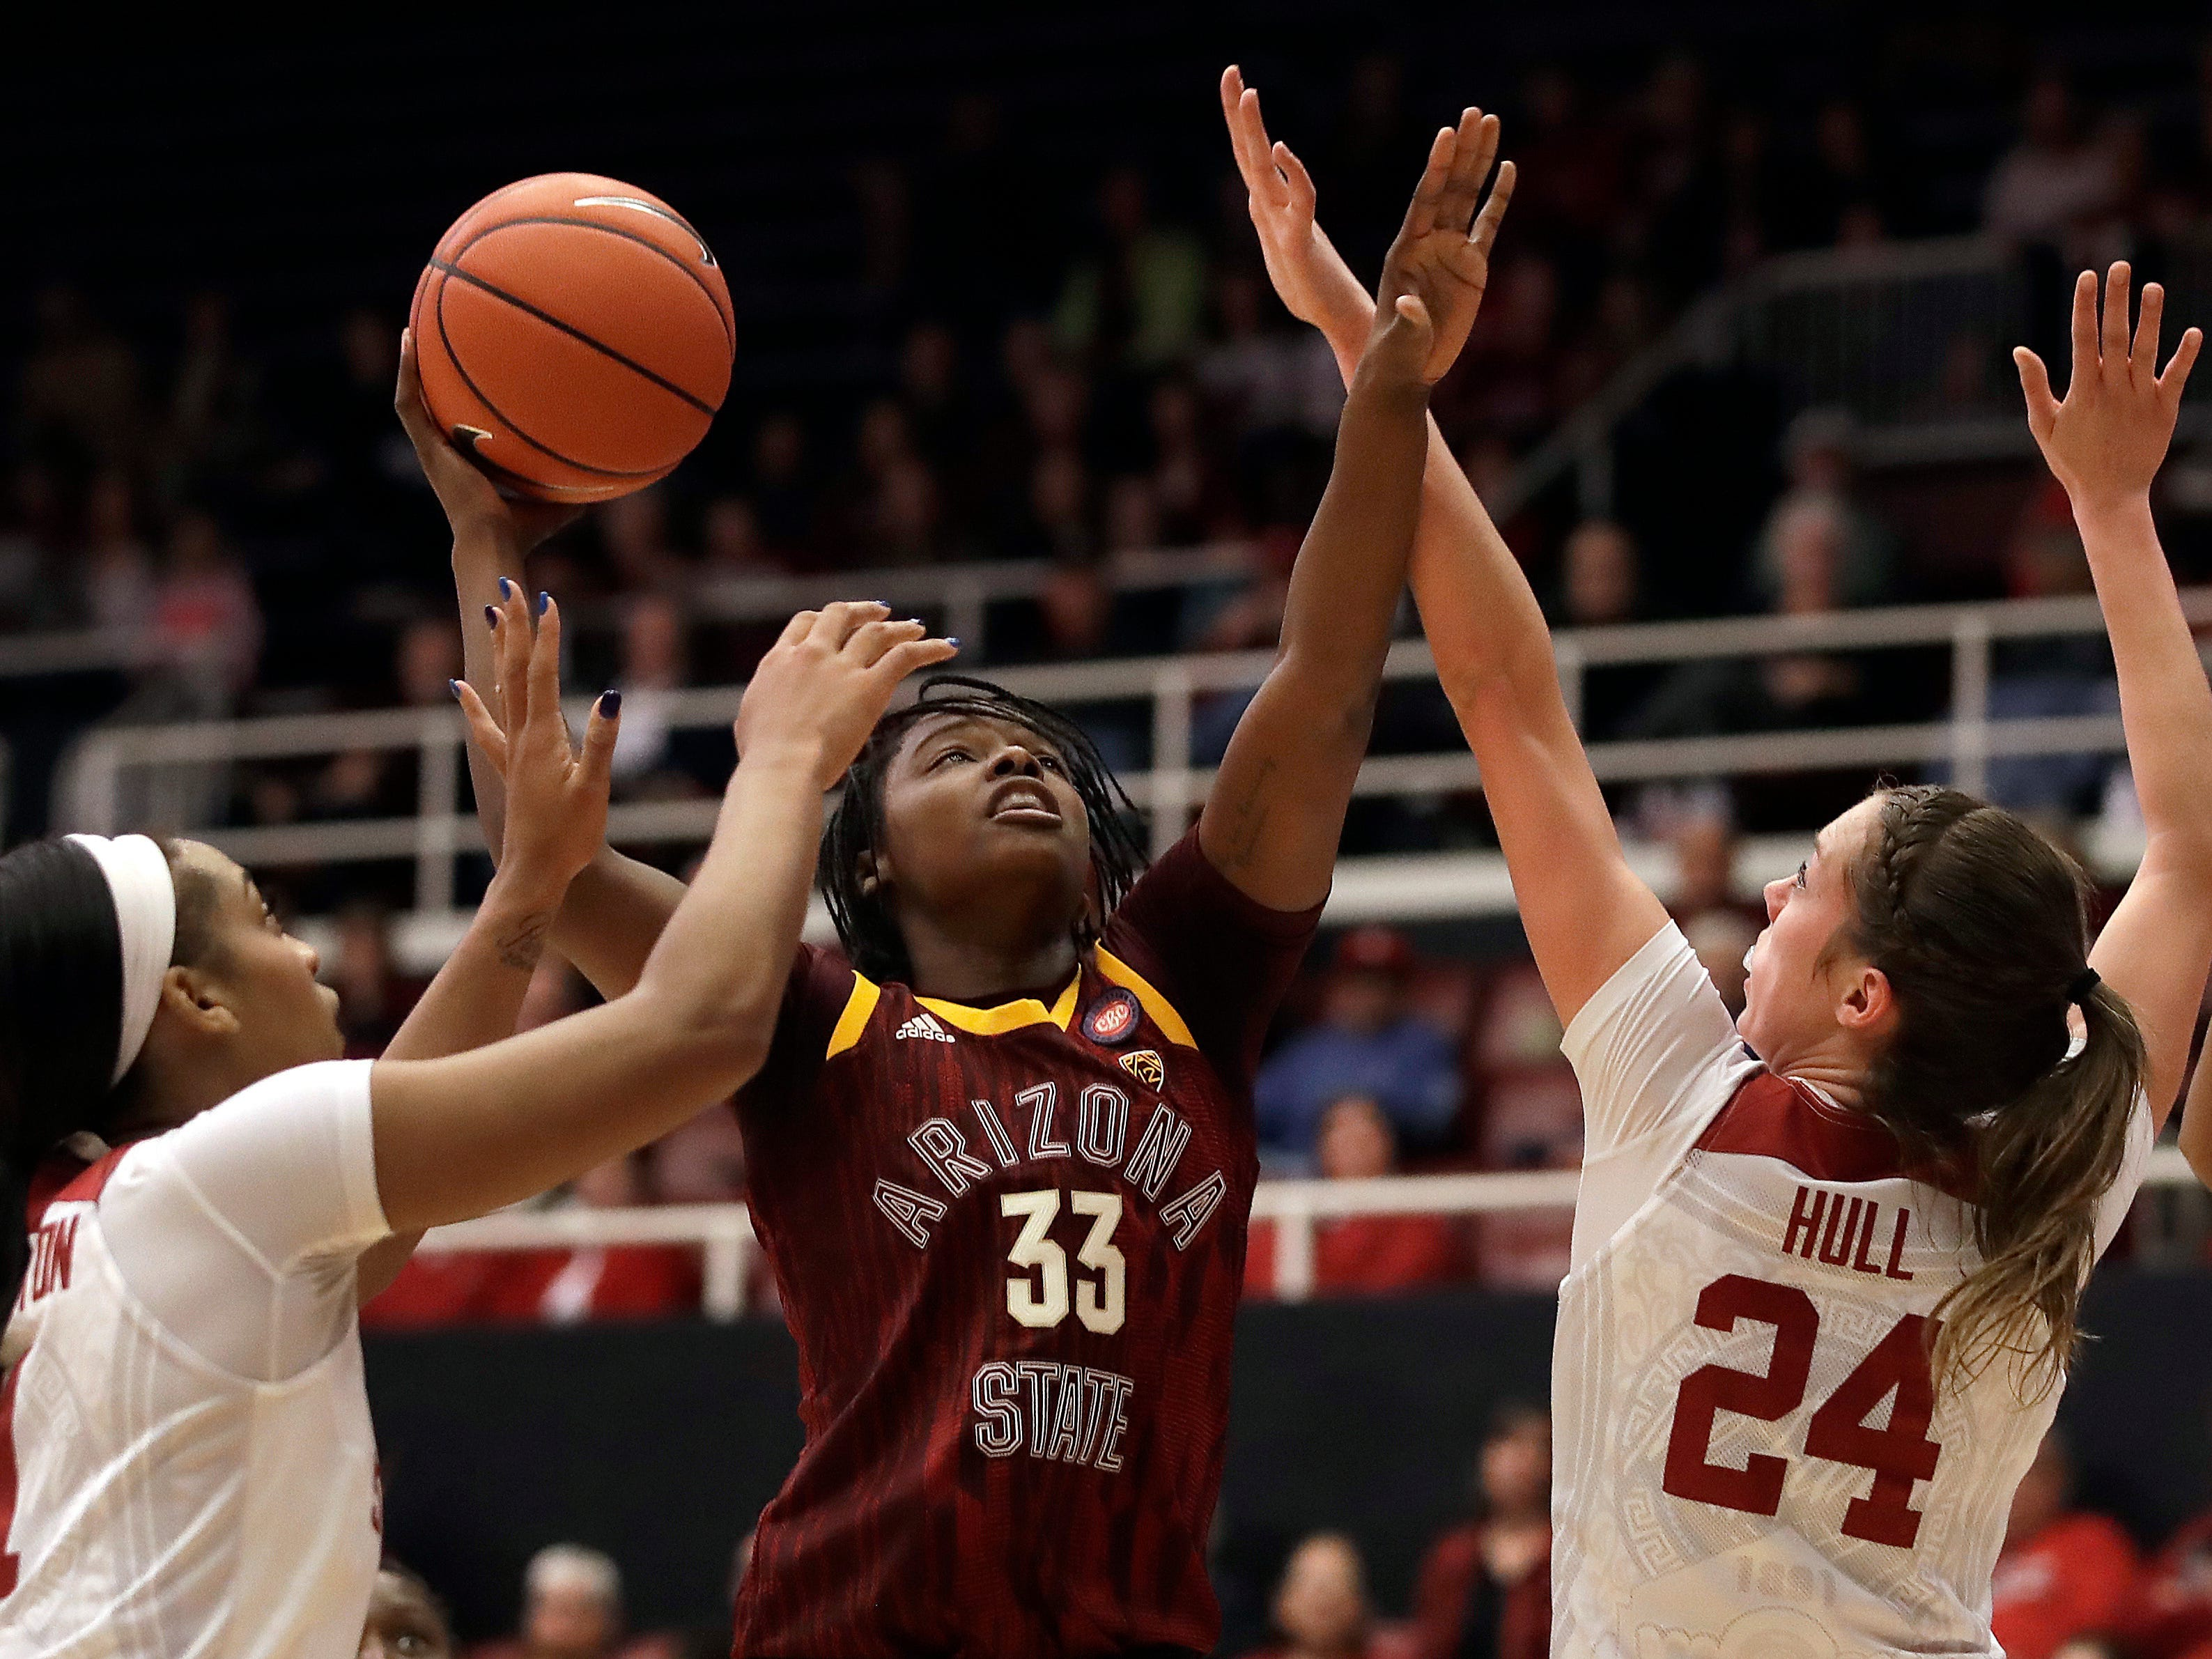 Arizona State's Charnea Johnson-Chapman (33) shoots between Stanford's DiJonai Carrington, left, and Lacie Hull (24) during the first half of an NCAA college basketball game Sunday, Feb. 24, 2019, in Stanford, Calif.